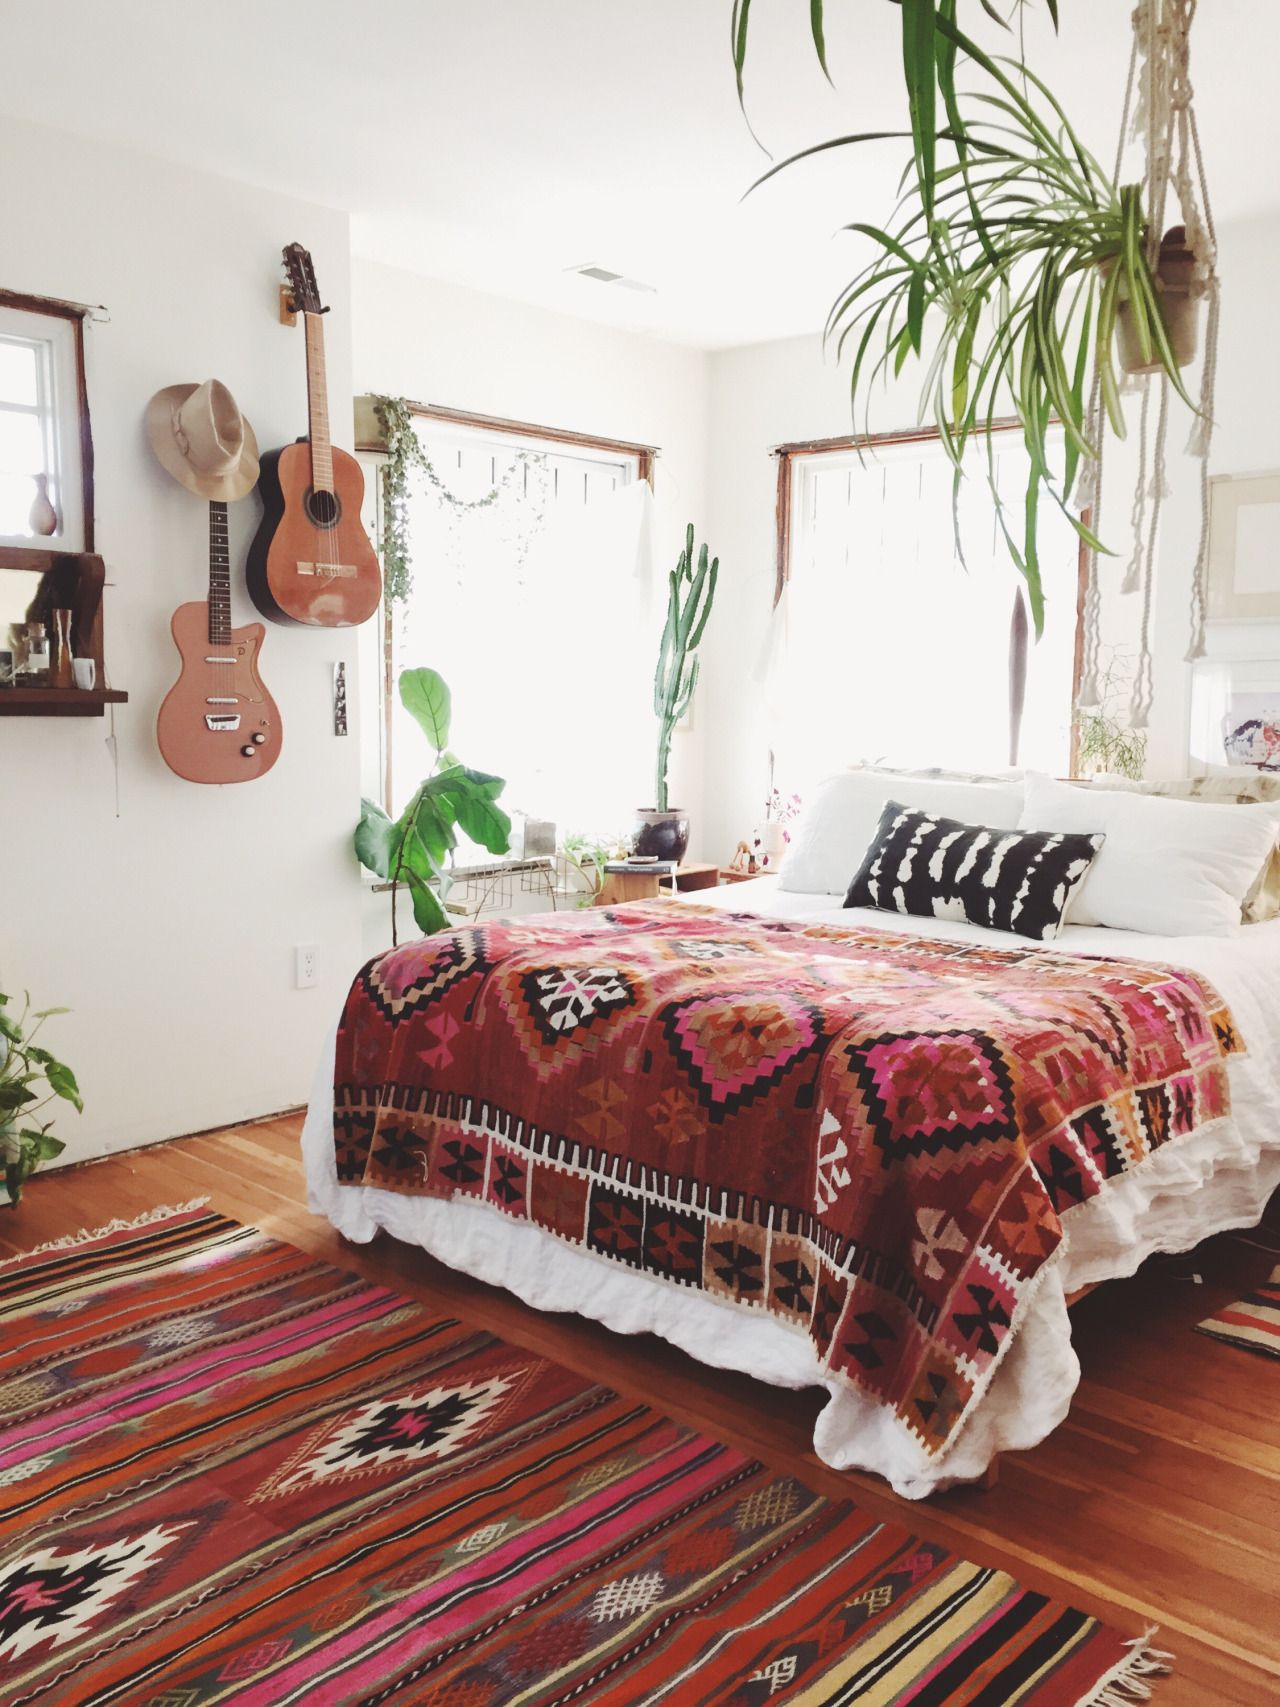 Boho room with plants guitars and funky